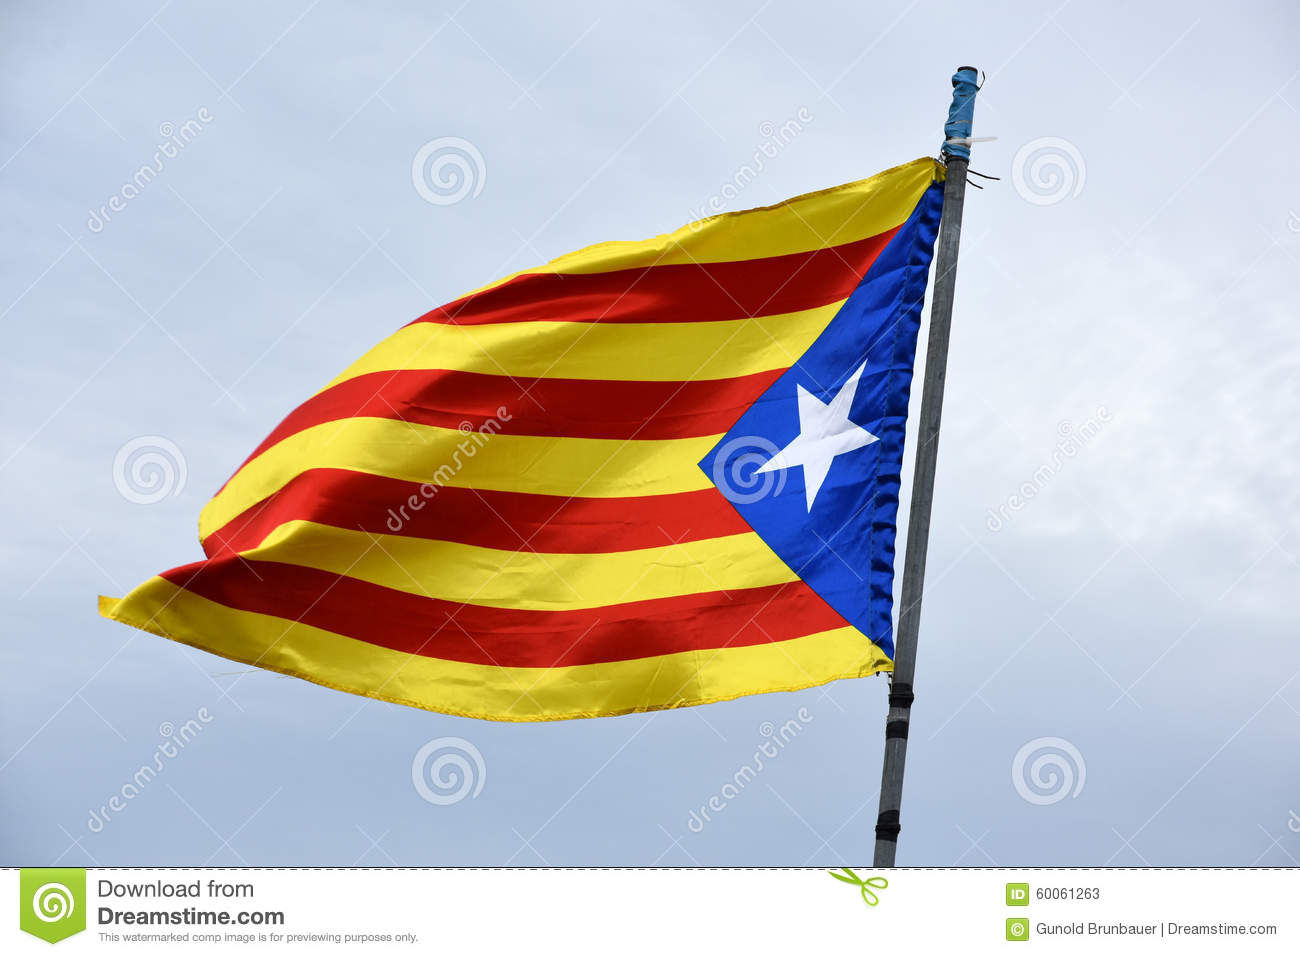 Bandeira de Catalonia independente